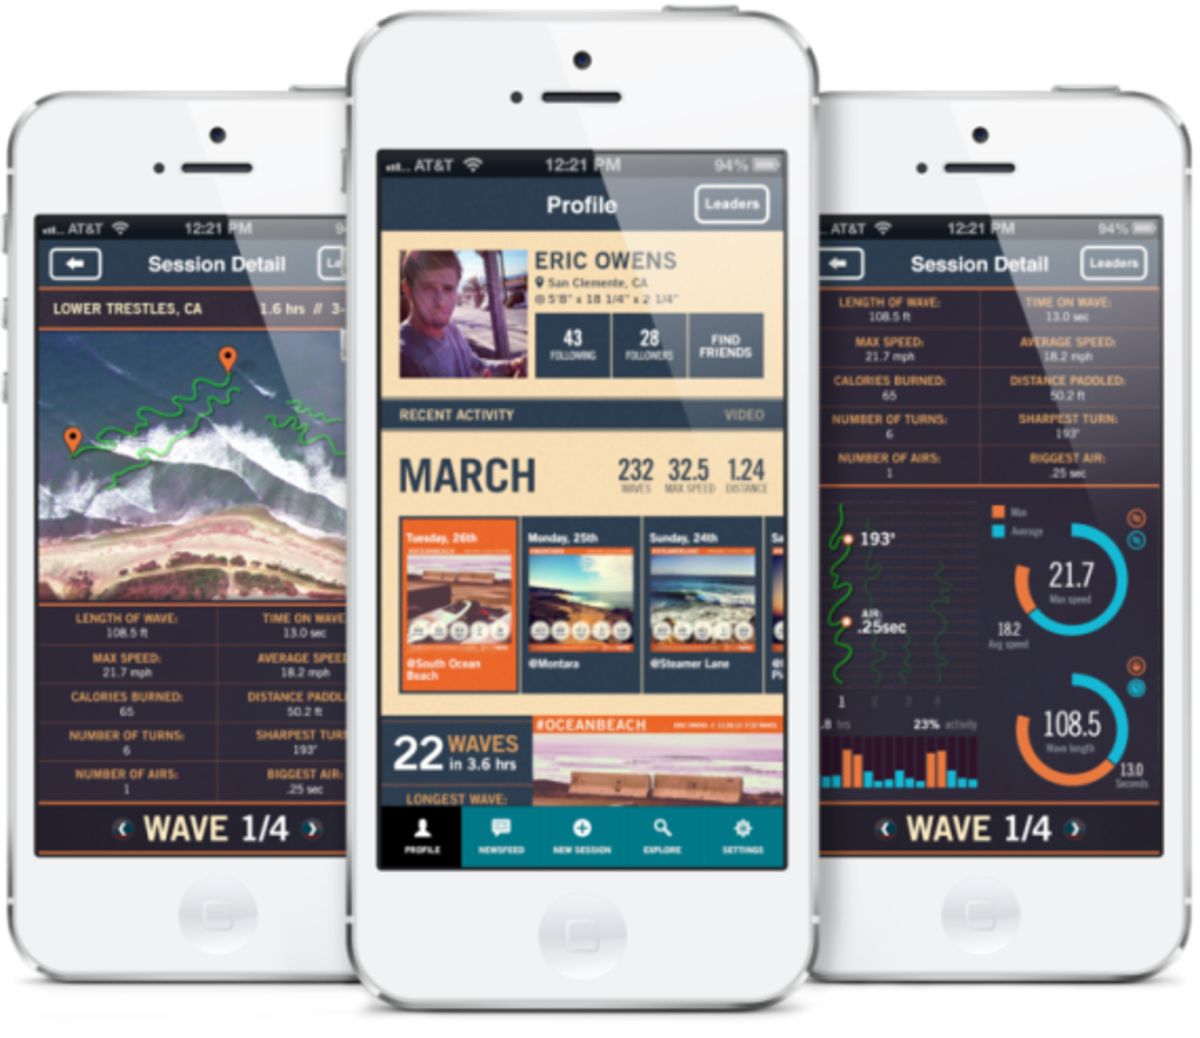 TRACE - Advanced Activity Monitor for Action Sports | By ActiveReplay - 3